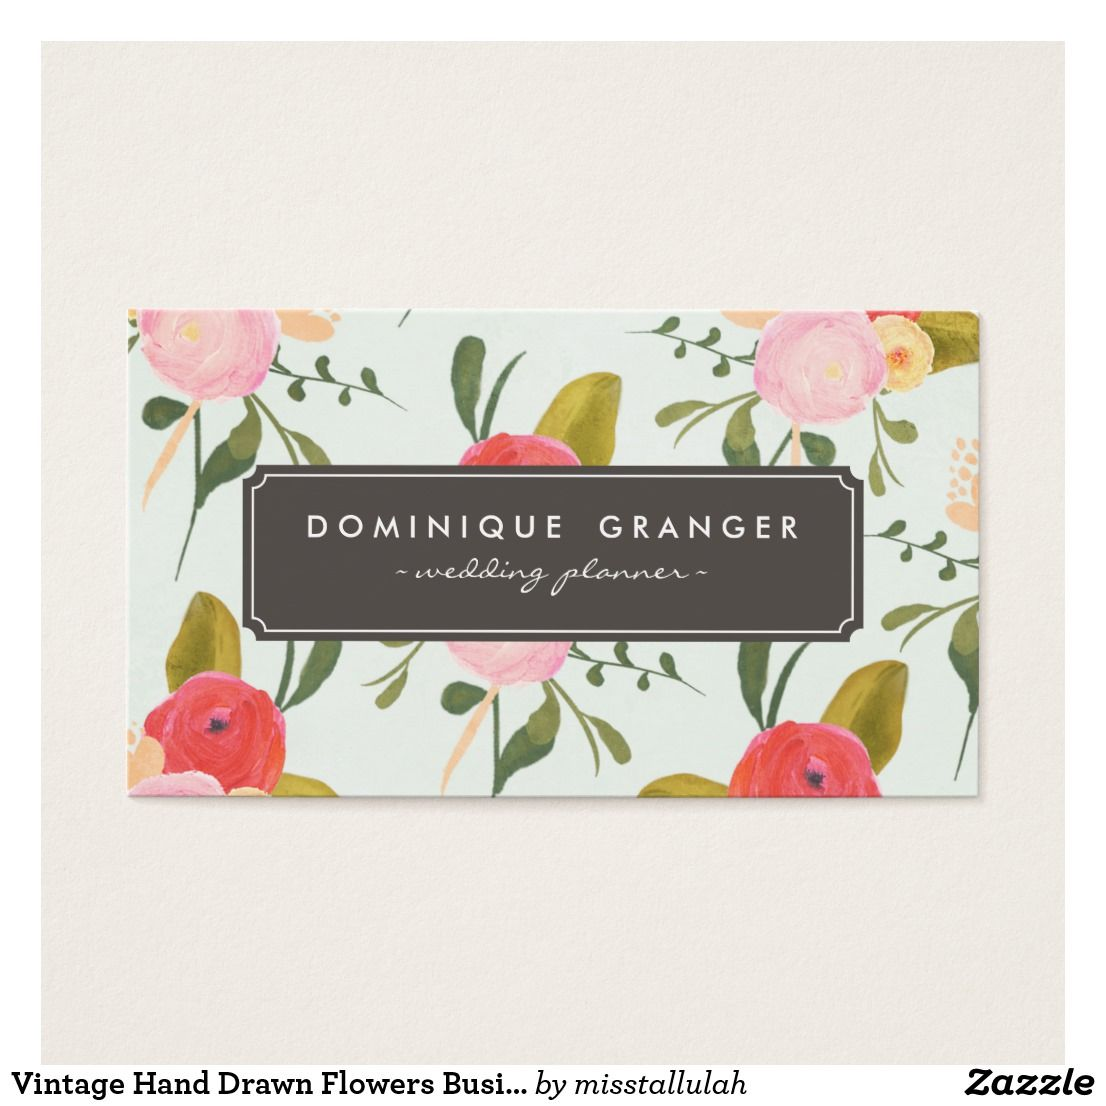 Vintage Hand Drawn Flowers Business Card | Business cards